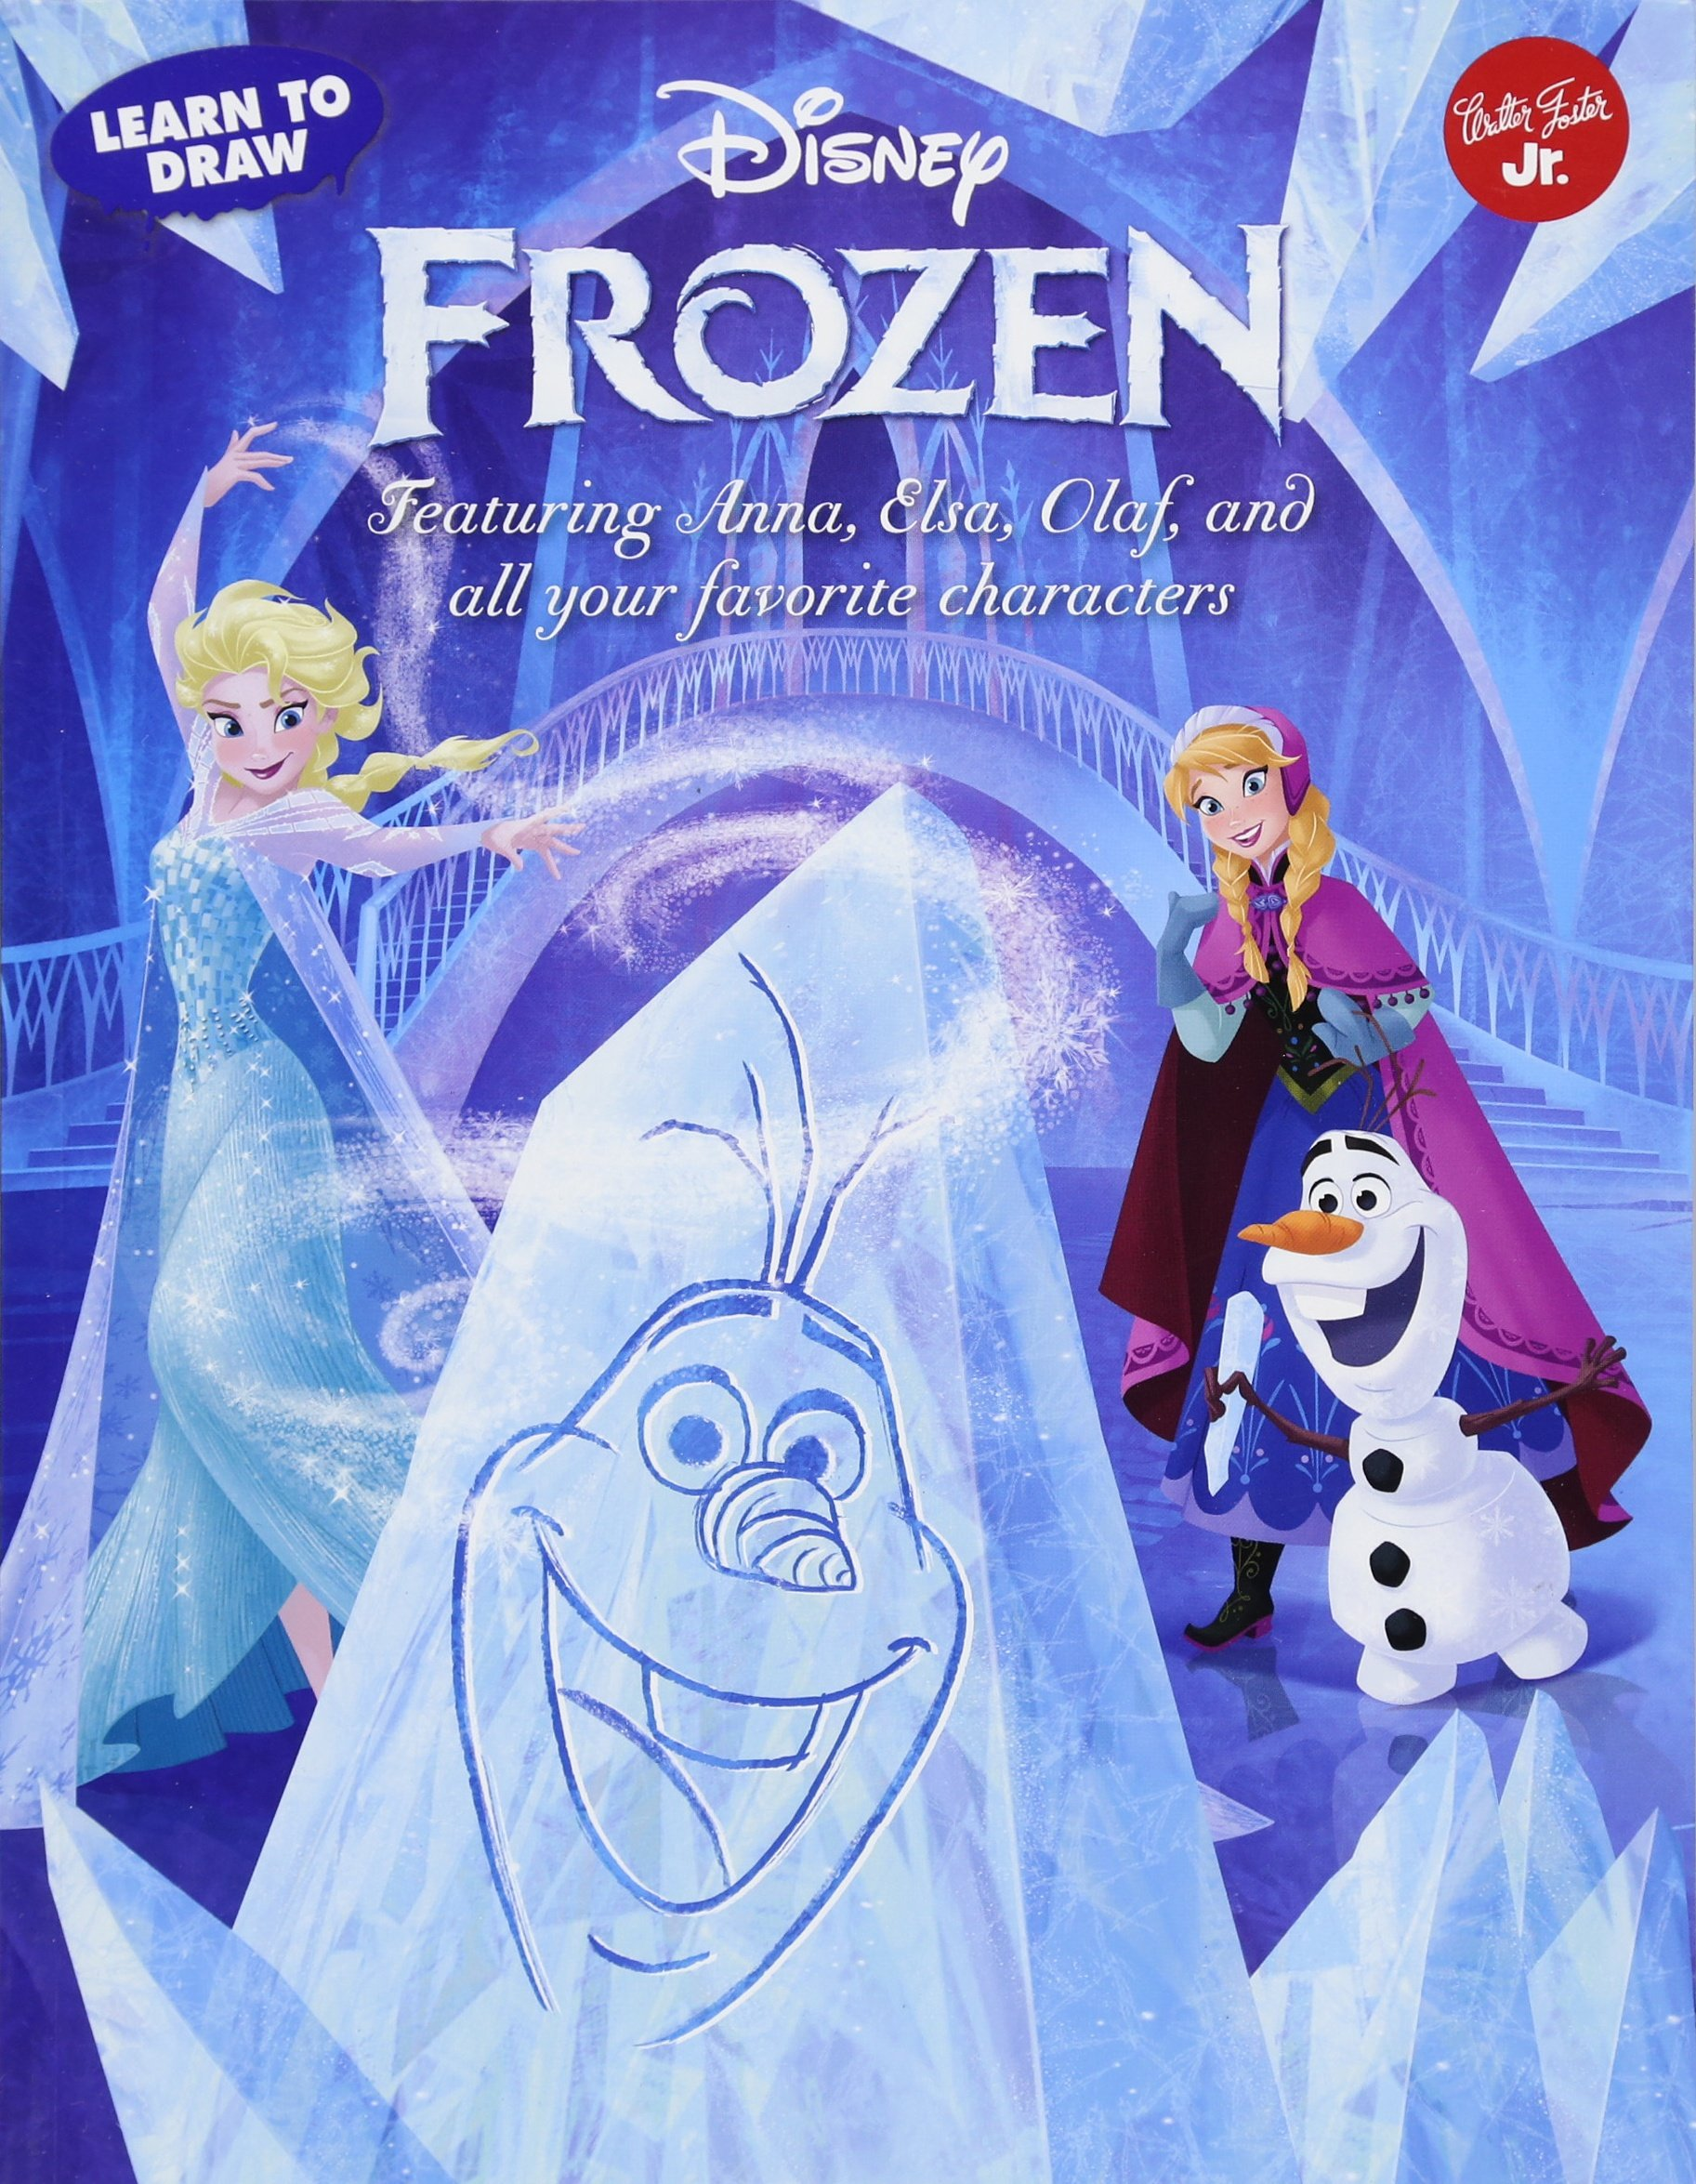 Read Online Learn to Draw Disney's Frozen: Featuring Anna, Elsa, Olaf, and all your favorite characters! (Licensed Learn to Draw) PDF